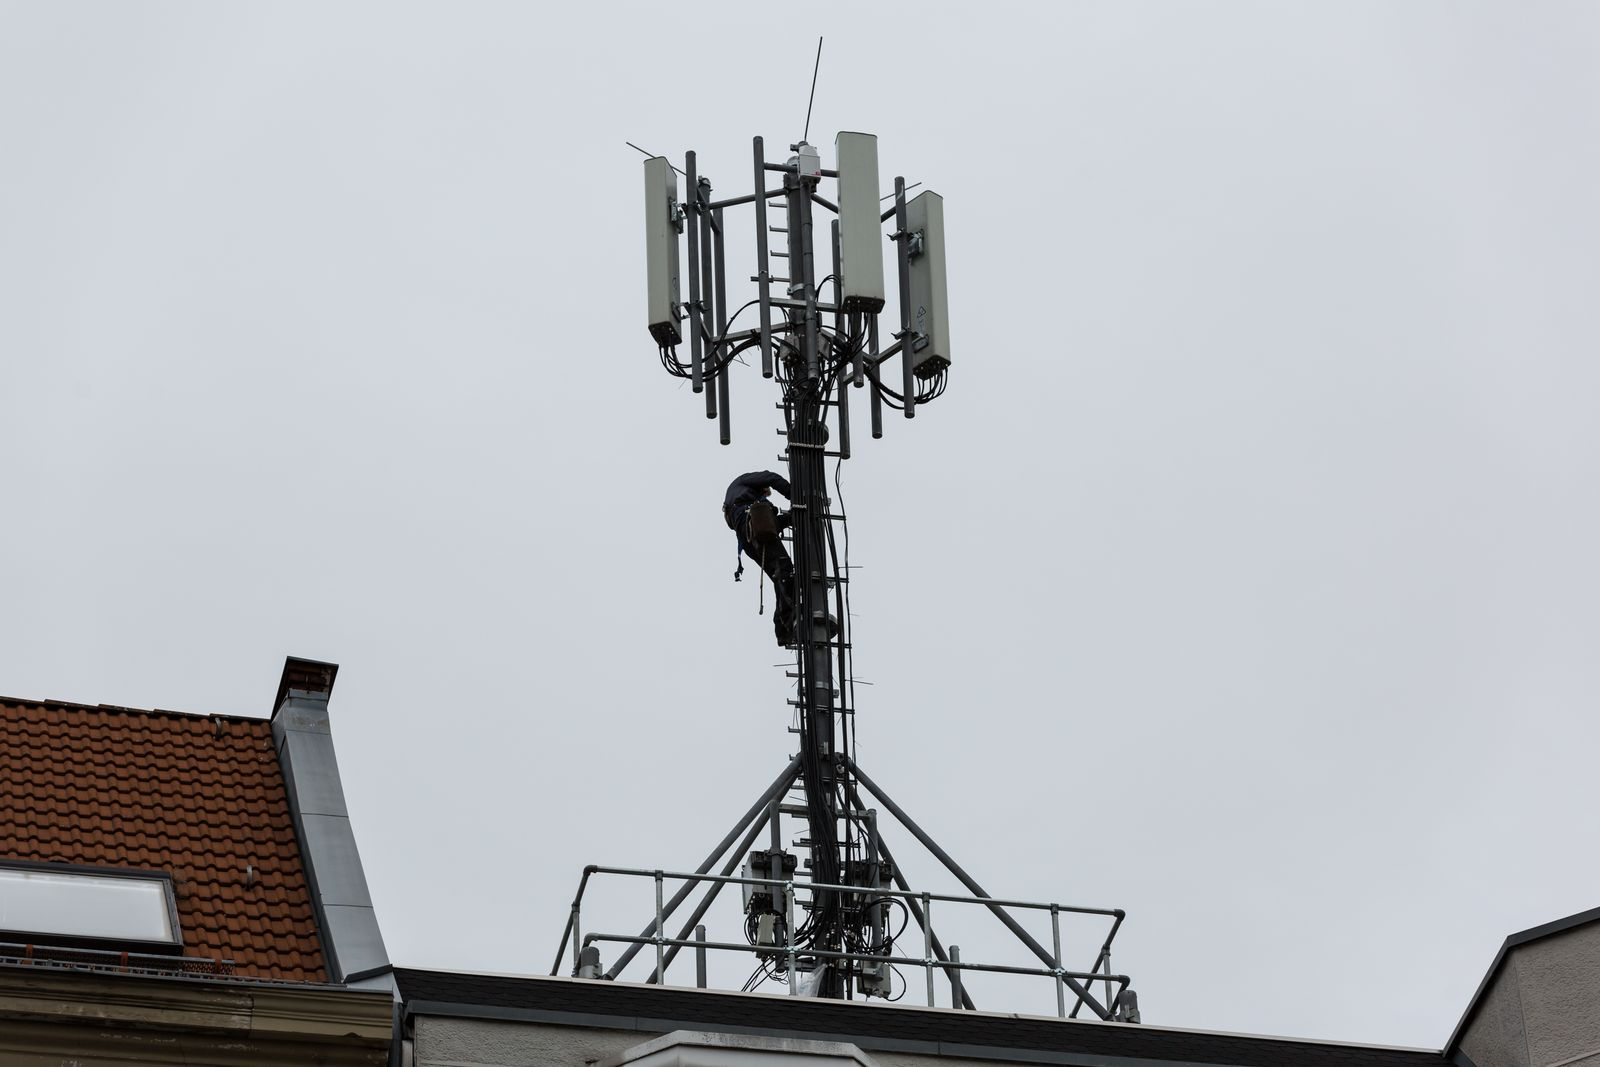 Arbeiter an einem Handy-Sendemast in Berlin *** Workers at a mobile phone transmission tower in Berlin